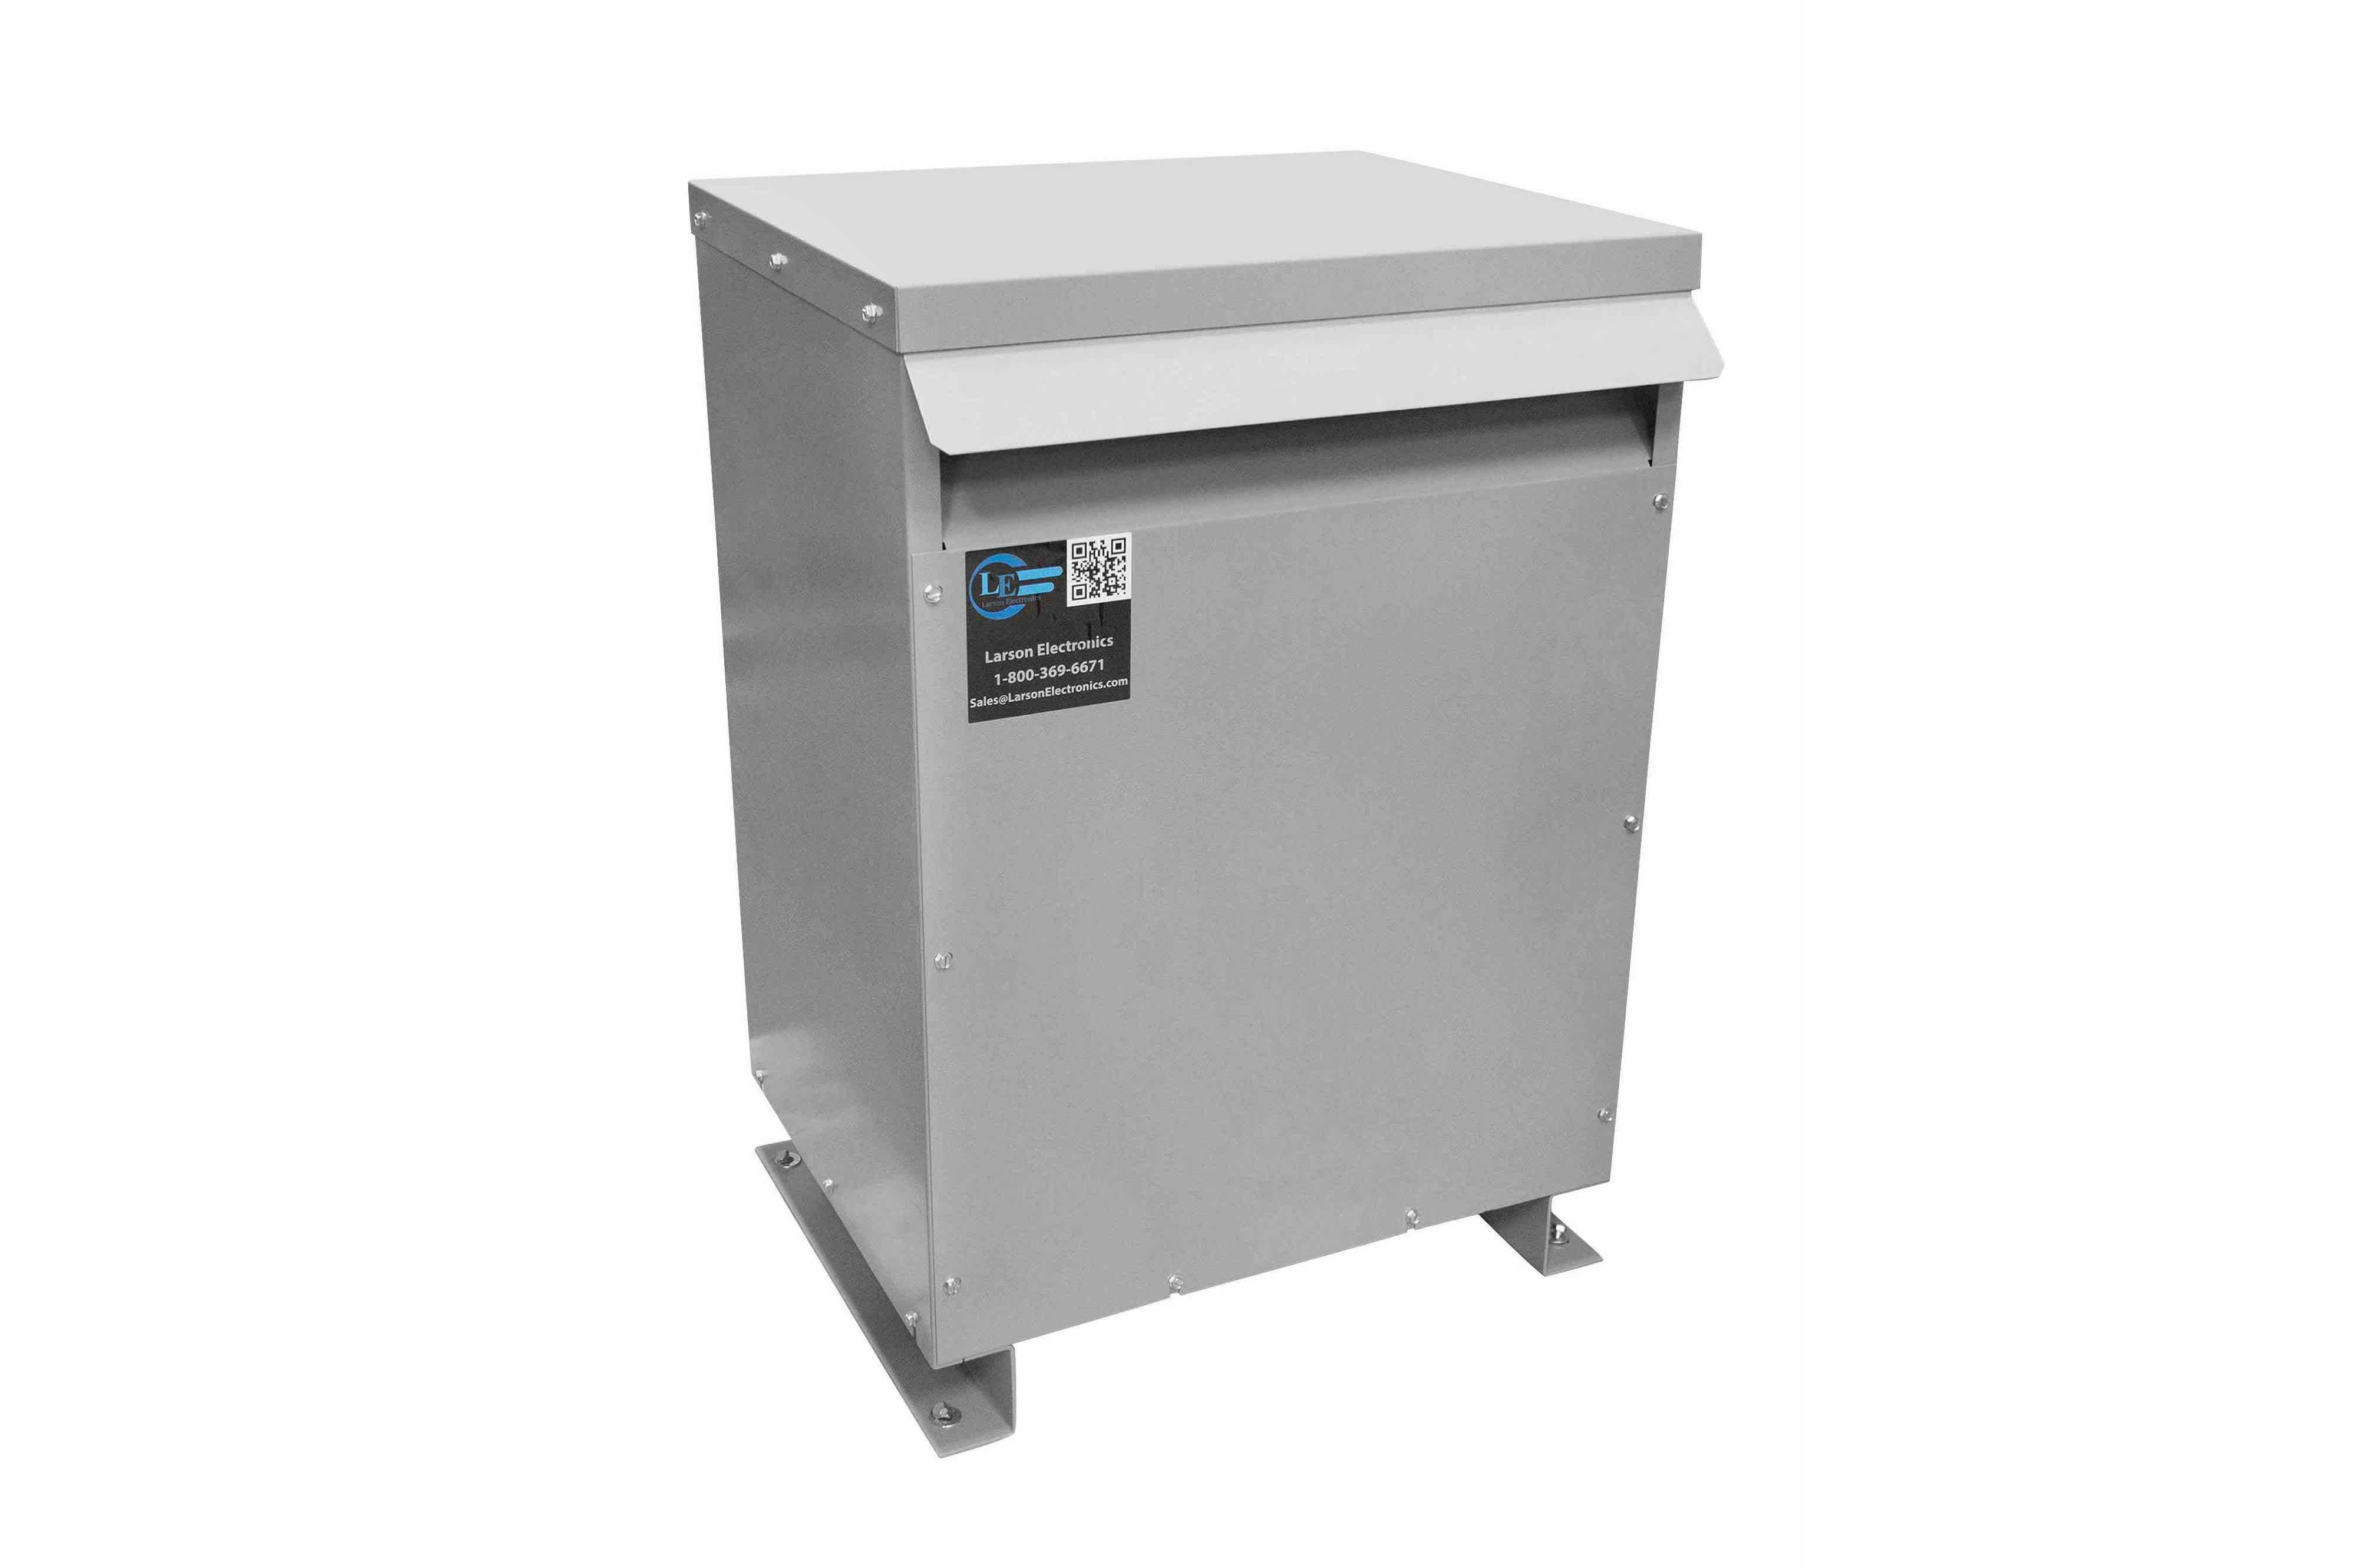 13 kVA 3PH Isolation Transformer, 208V Wye Primary, 480V Delta Secondary, N3R, Ventilated, 60 Hz